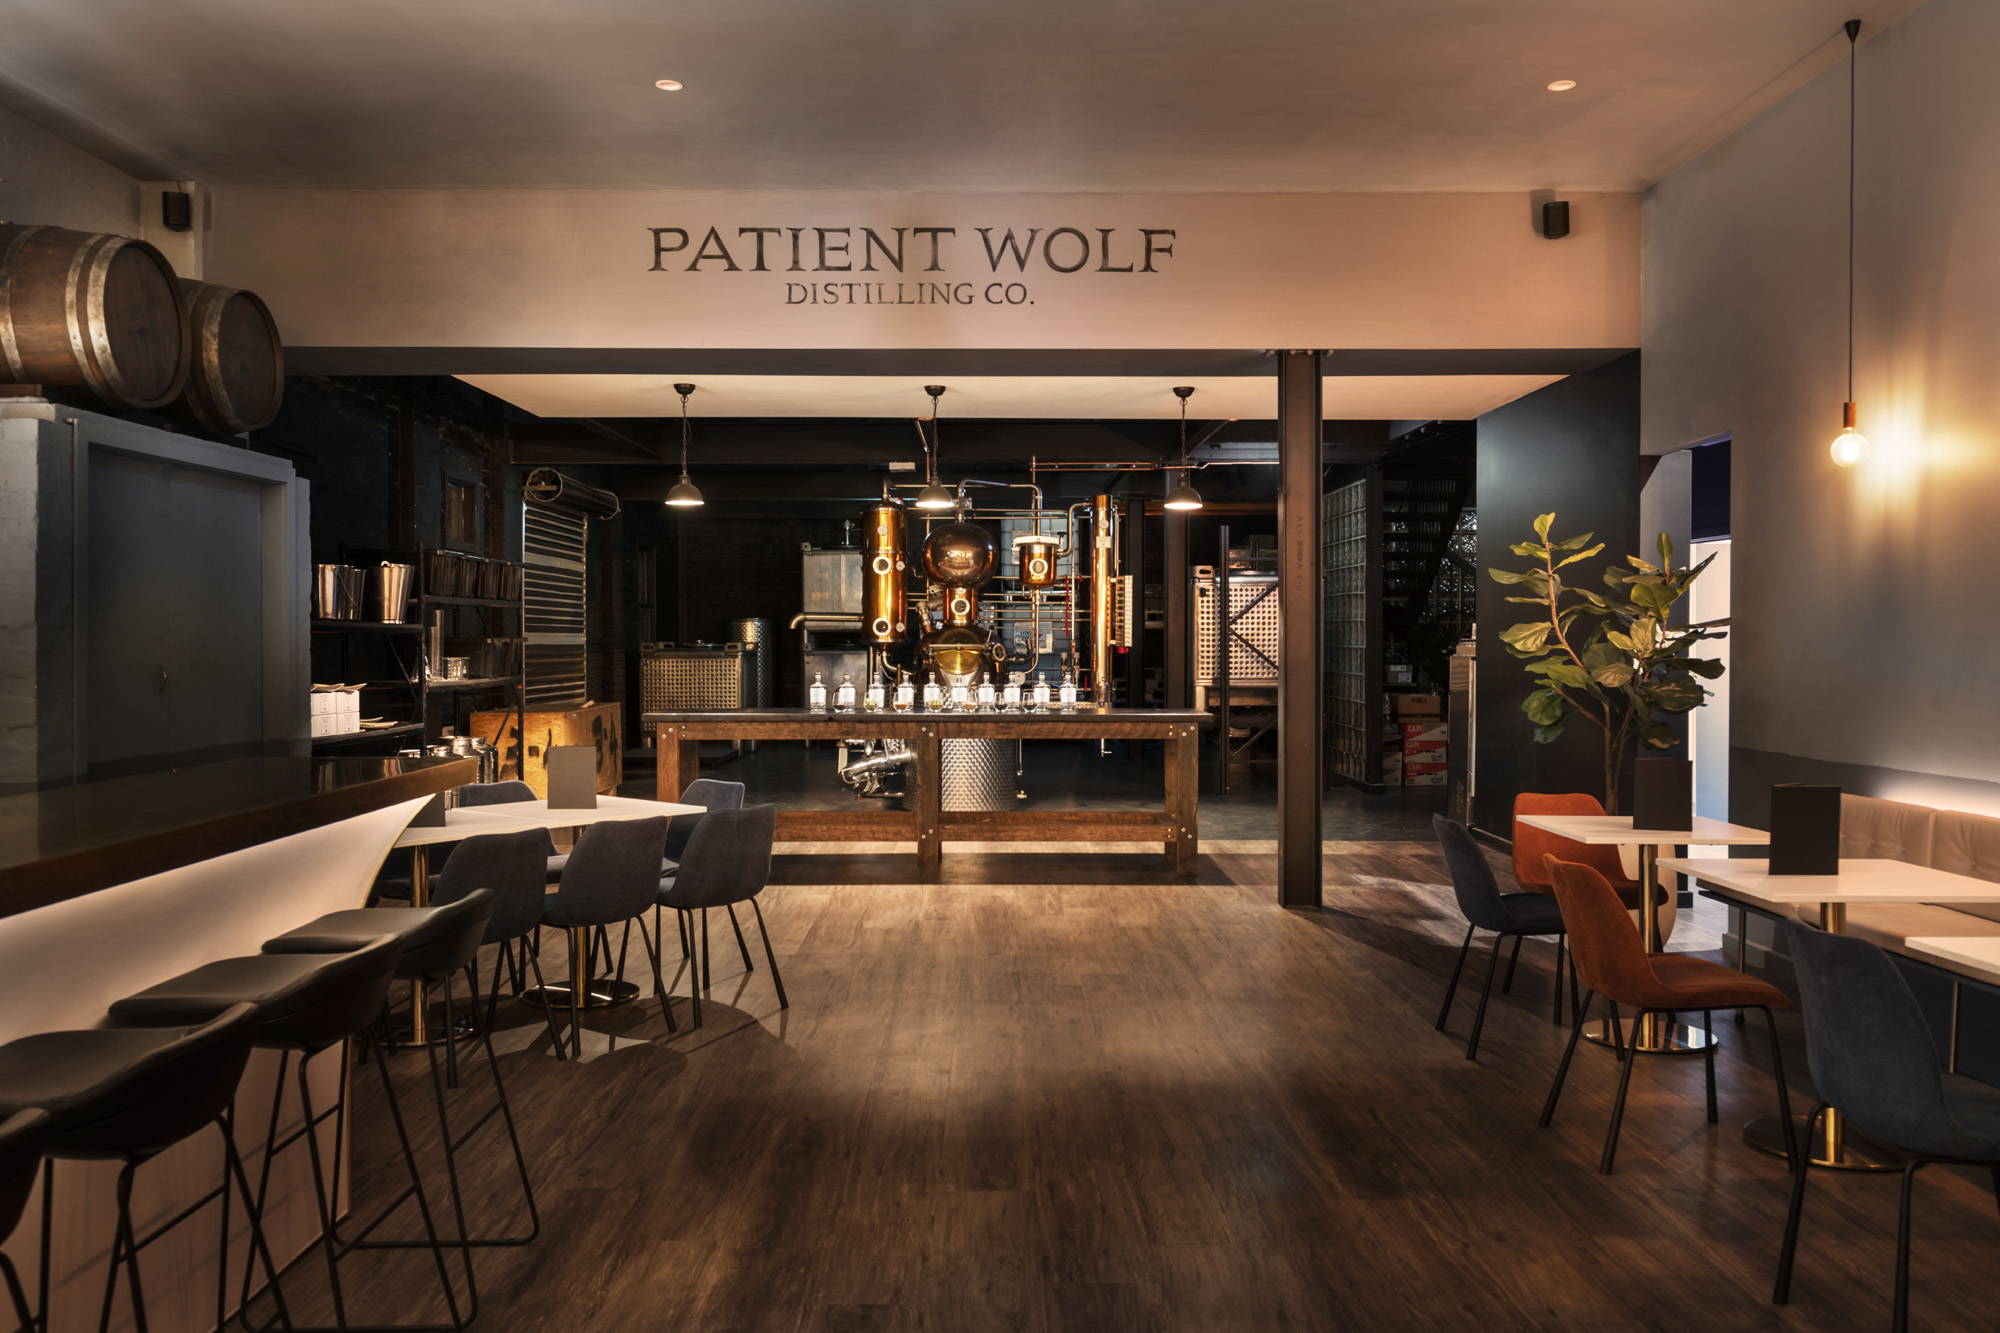 New G&T Festival With Patient Wolf And Long Rays Celebrates A Victorian First